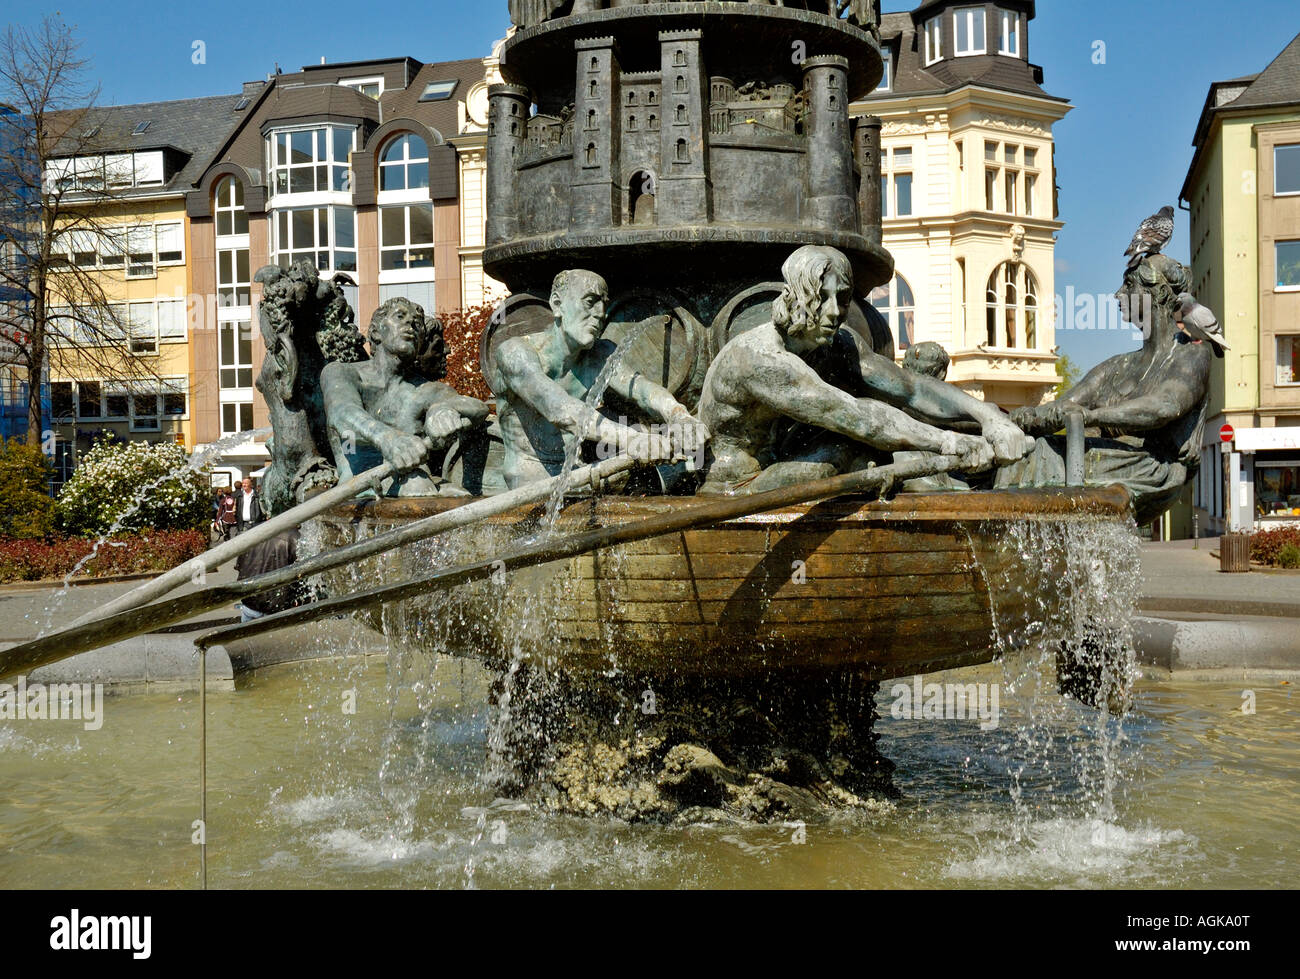 the koblenz history column fountain germany the wine ship at the stock photo 14231399 alamy. Black Bedroom Furniture Sets. Home Design Ideas